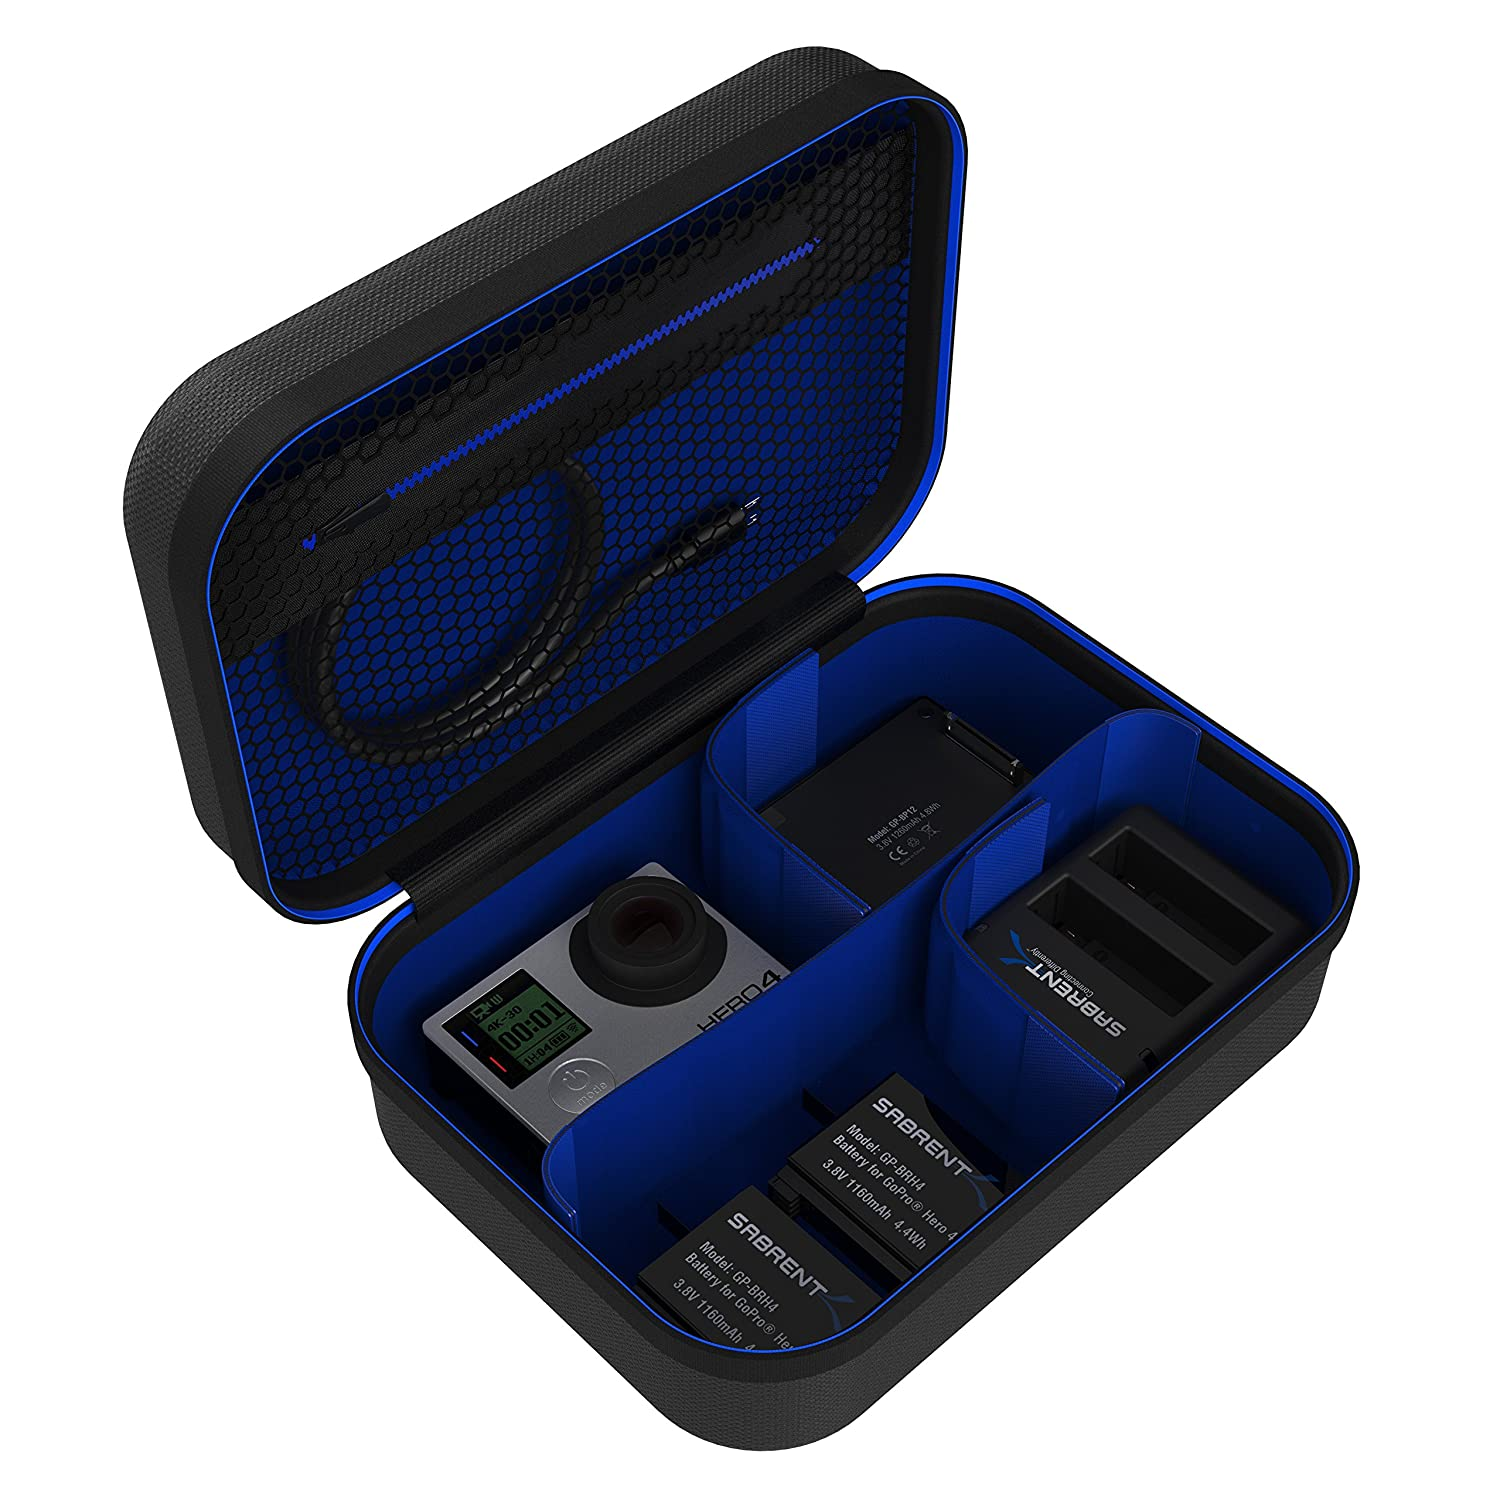 Small GP-CSSL Sabrent Universal Travel Case for GoPro or Small Electronics and Accessories